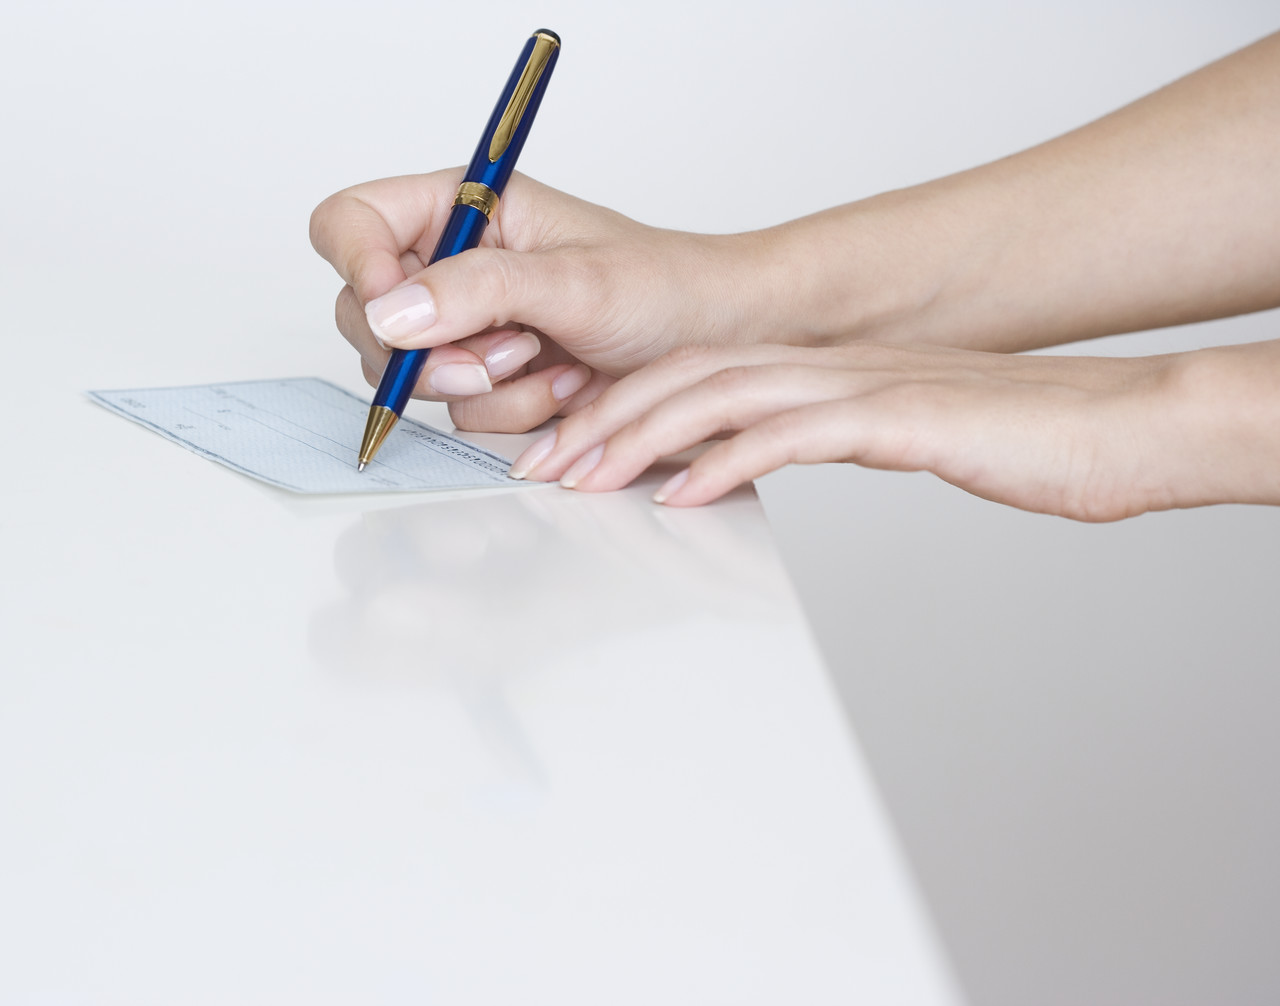 Digital signatures: are they considered legally binding?